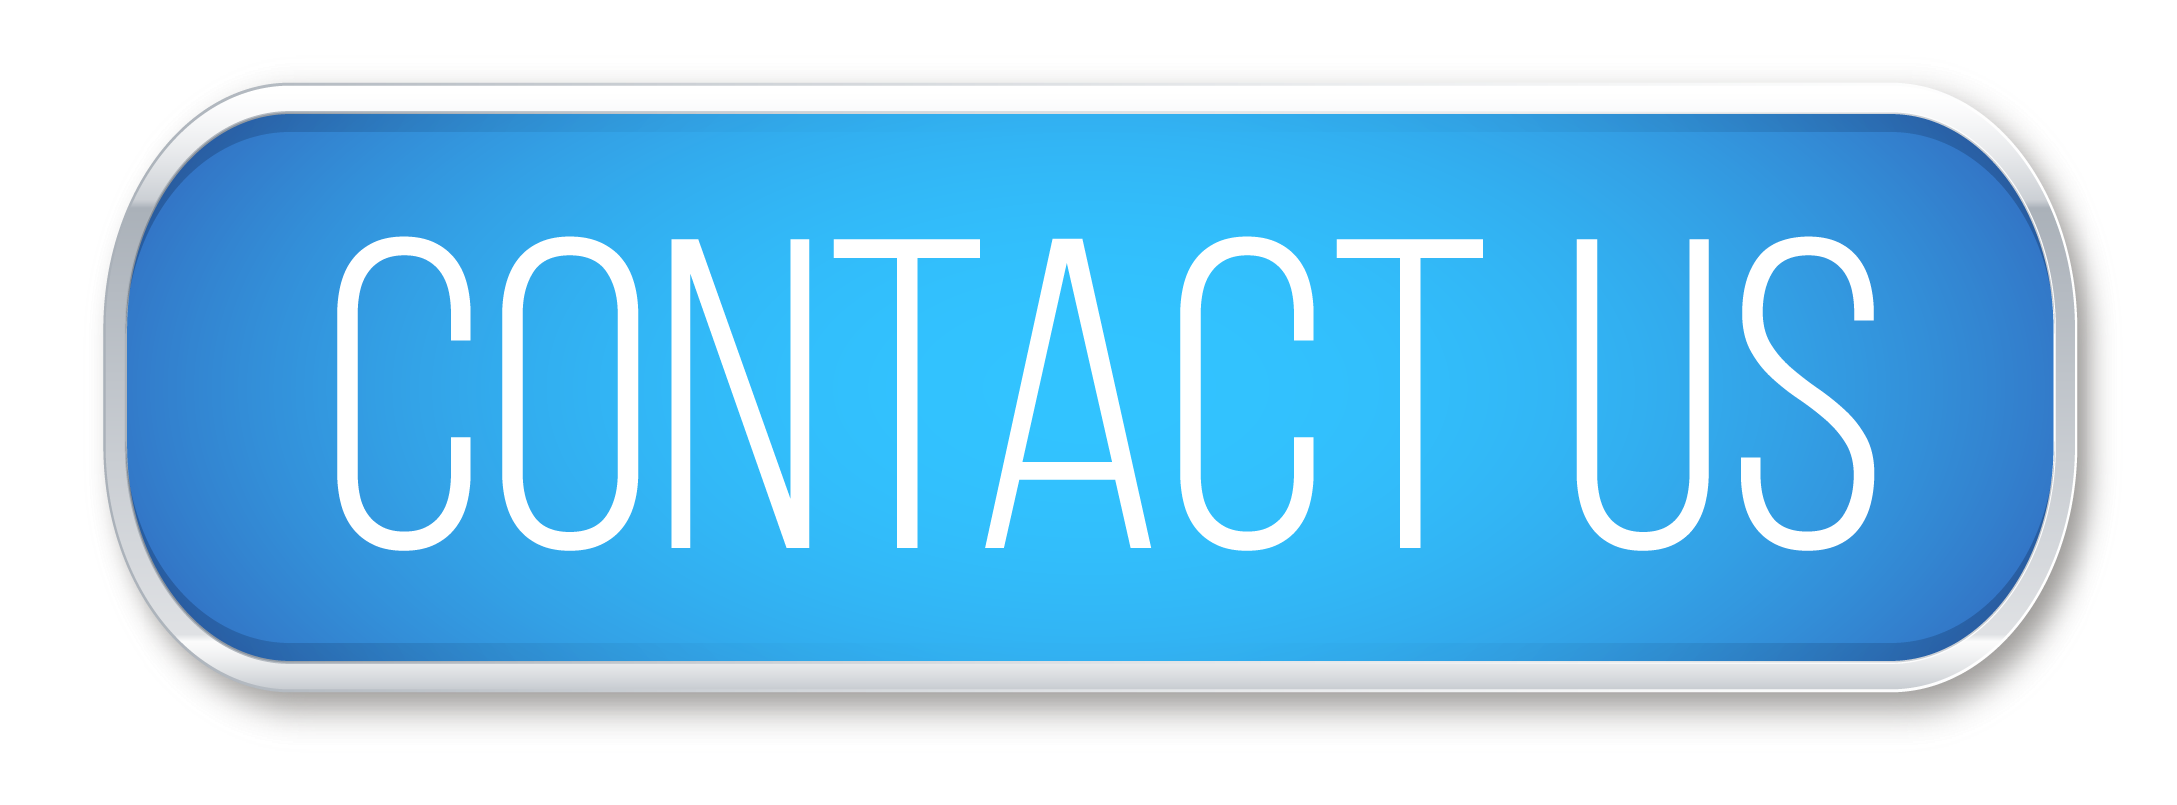 Contact Us Button PNG Images Transparent Background.